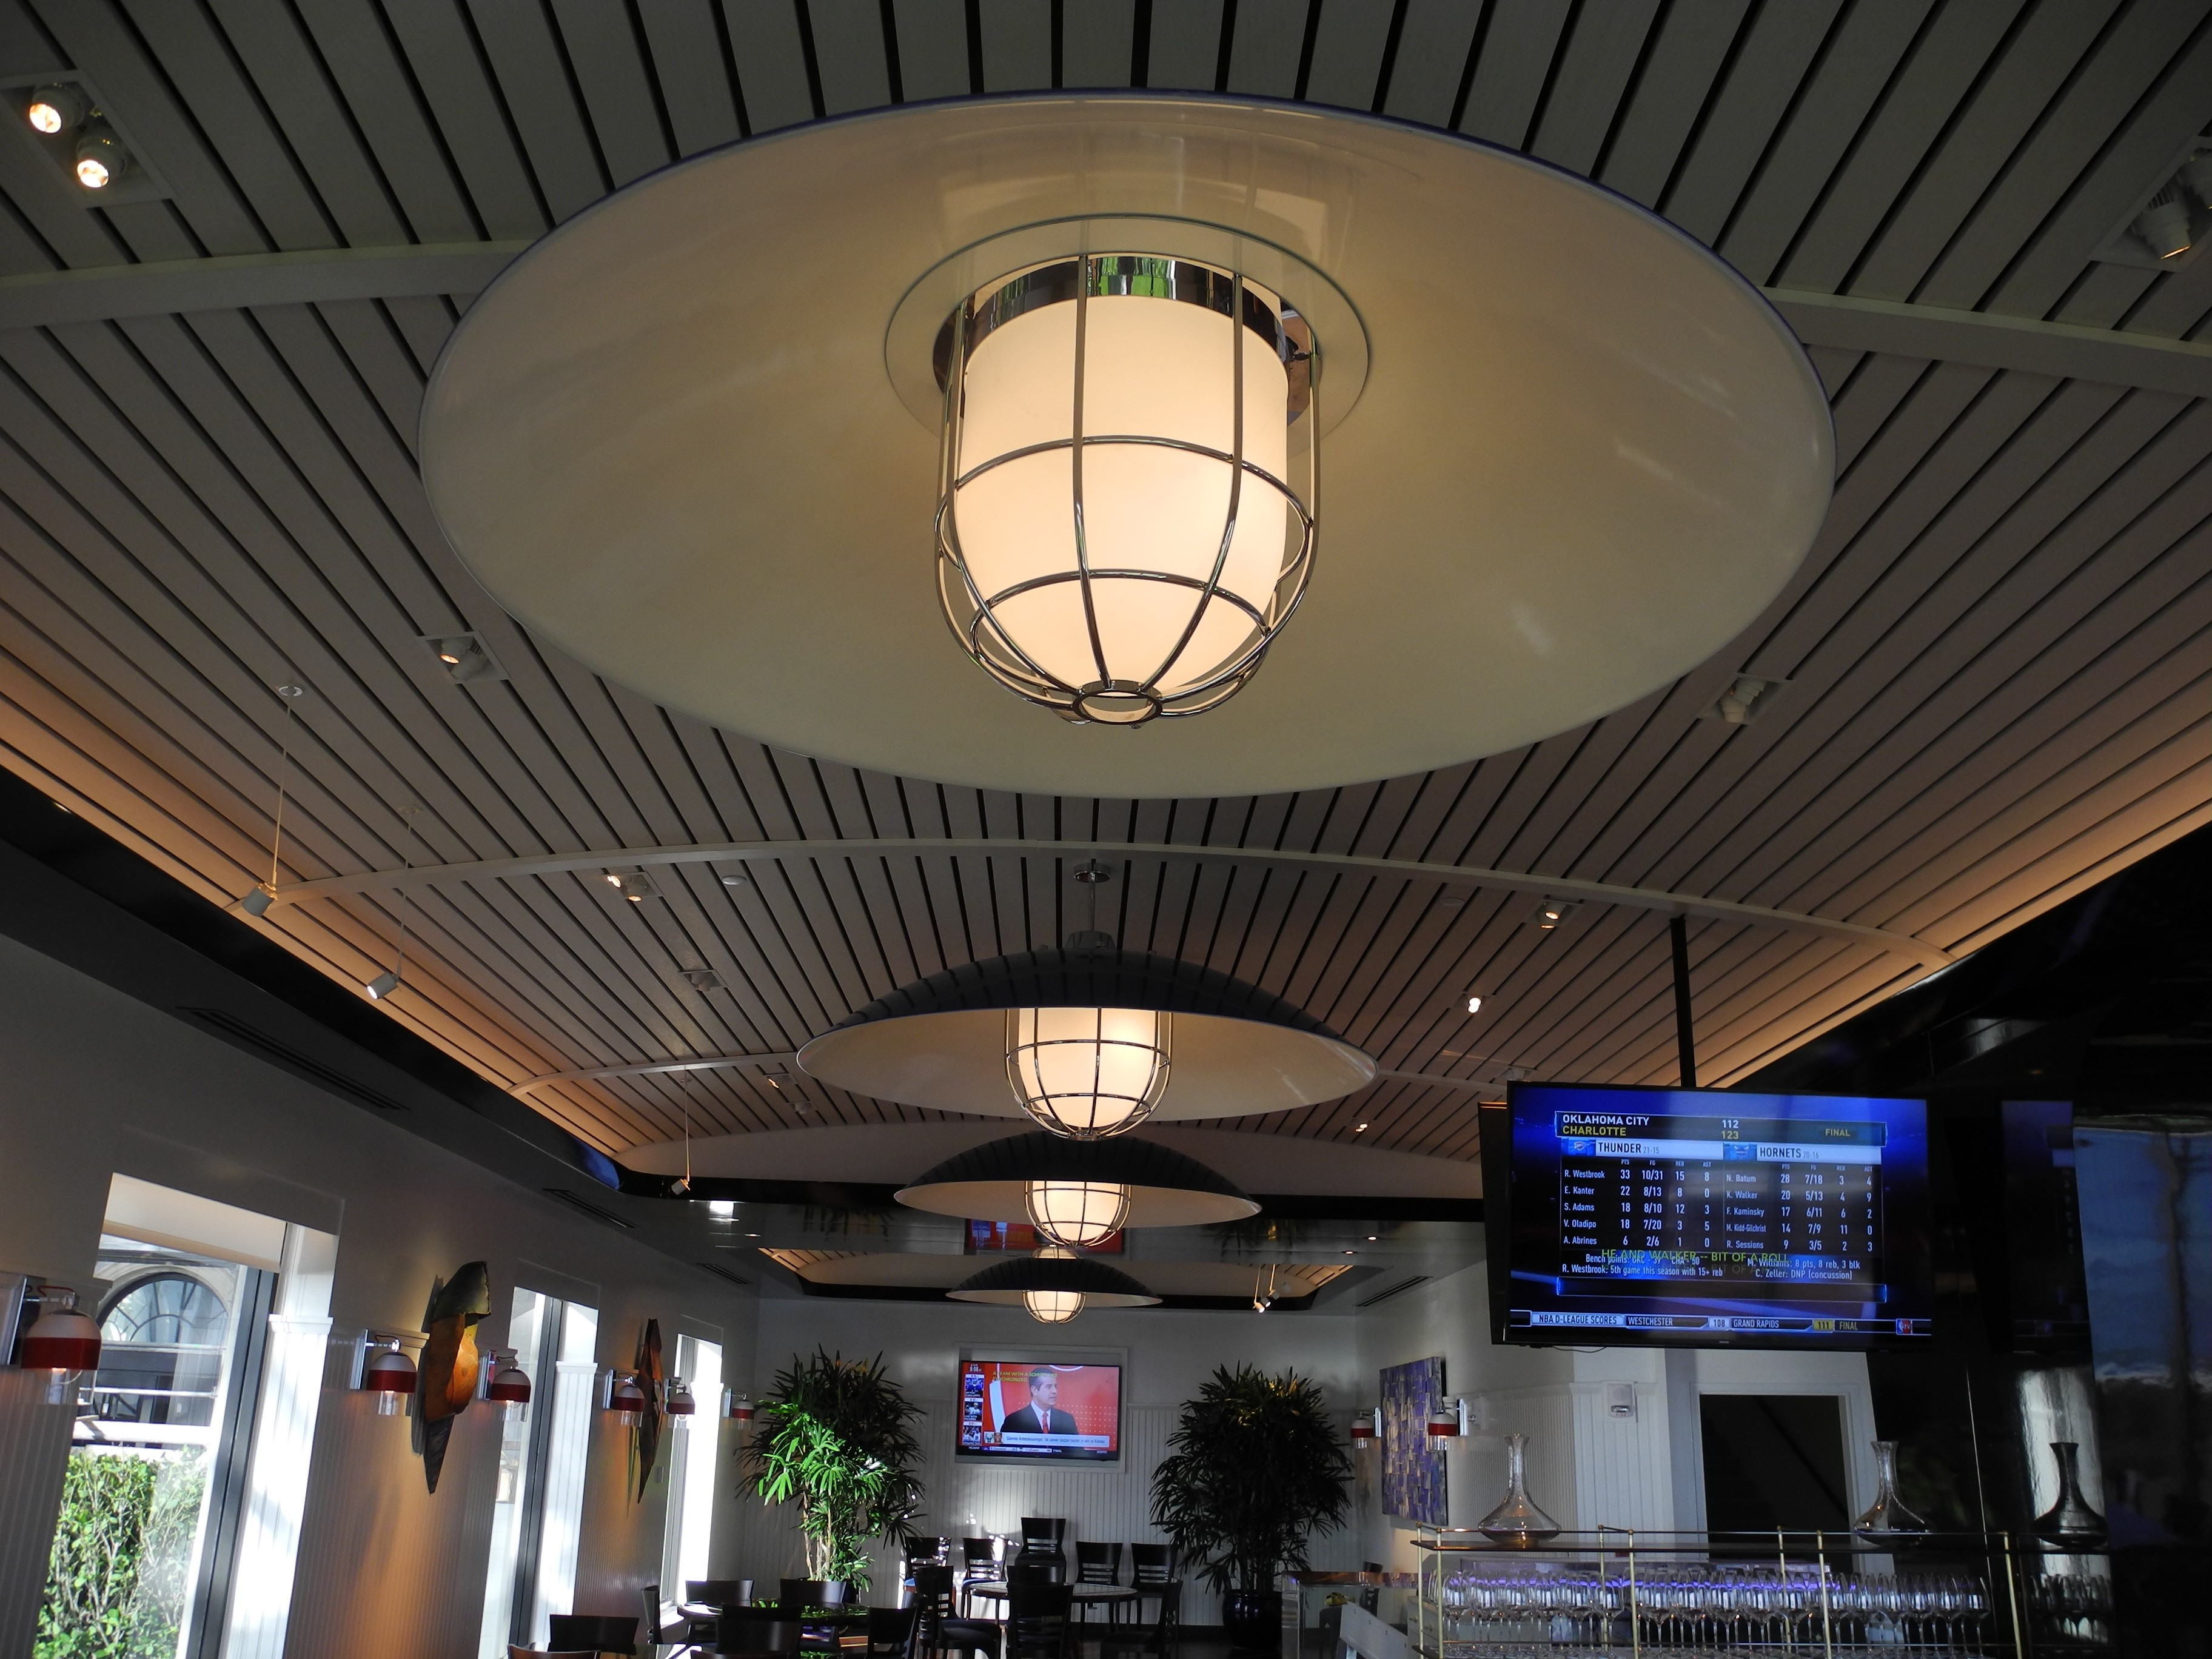 The Breakers Seafood Bar ceiling and light fixtures on ceiling